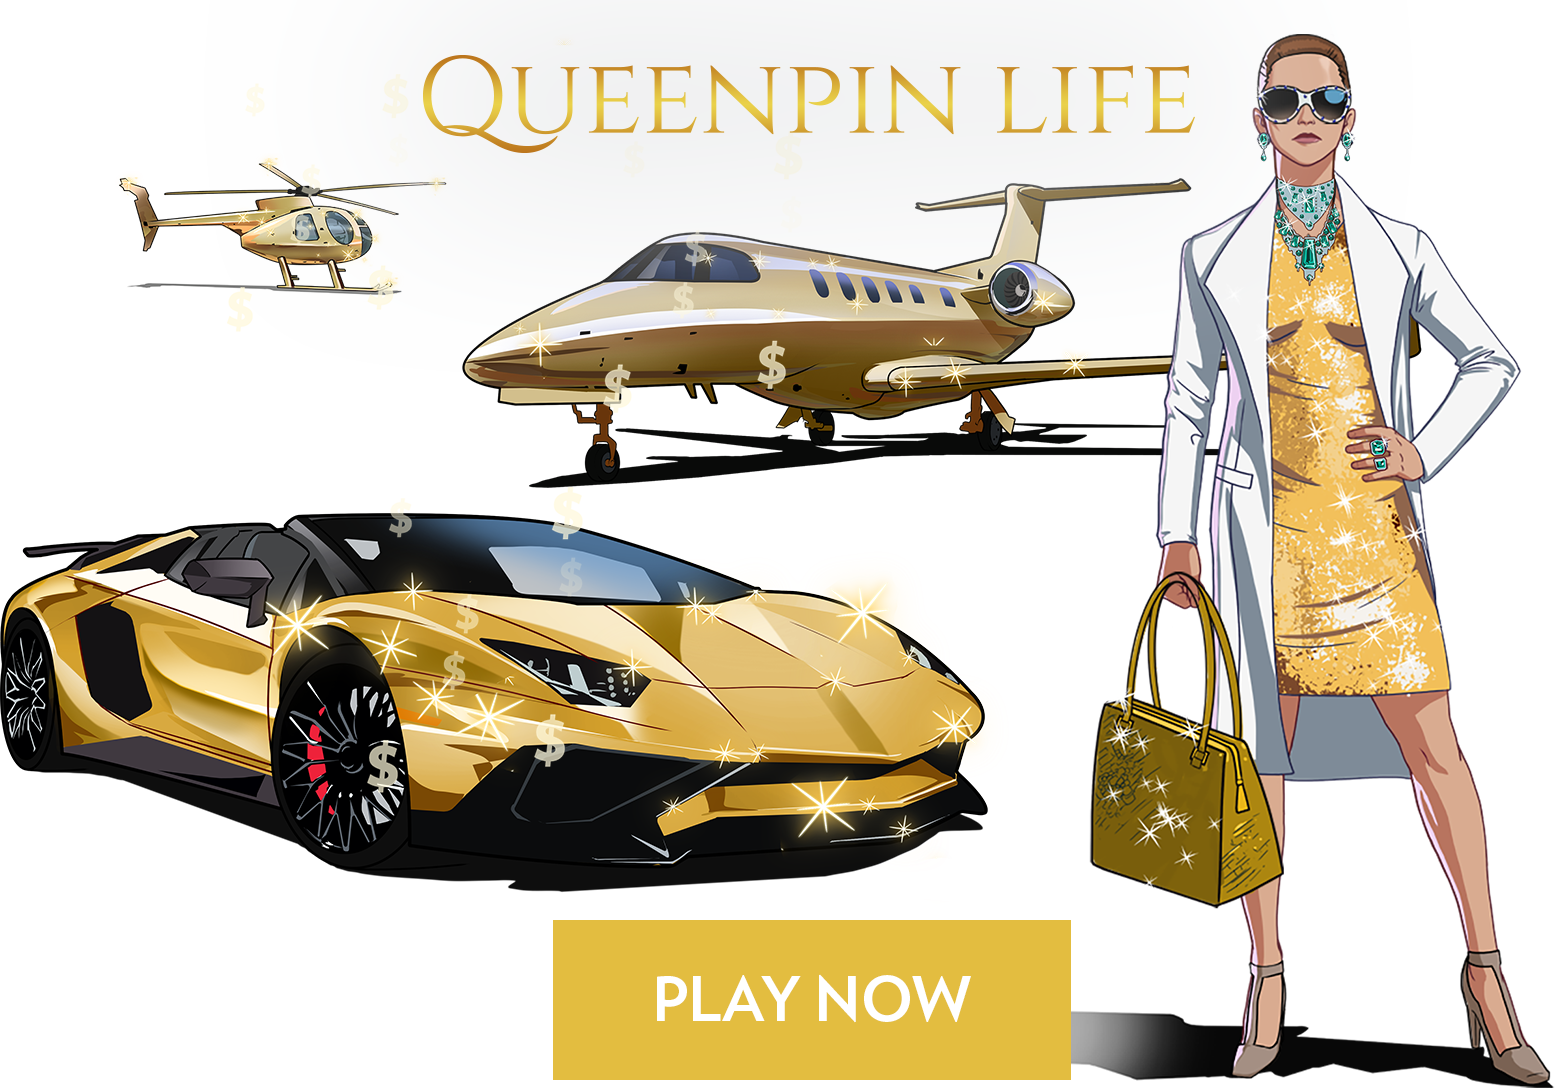 Queenpin Life game promo